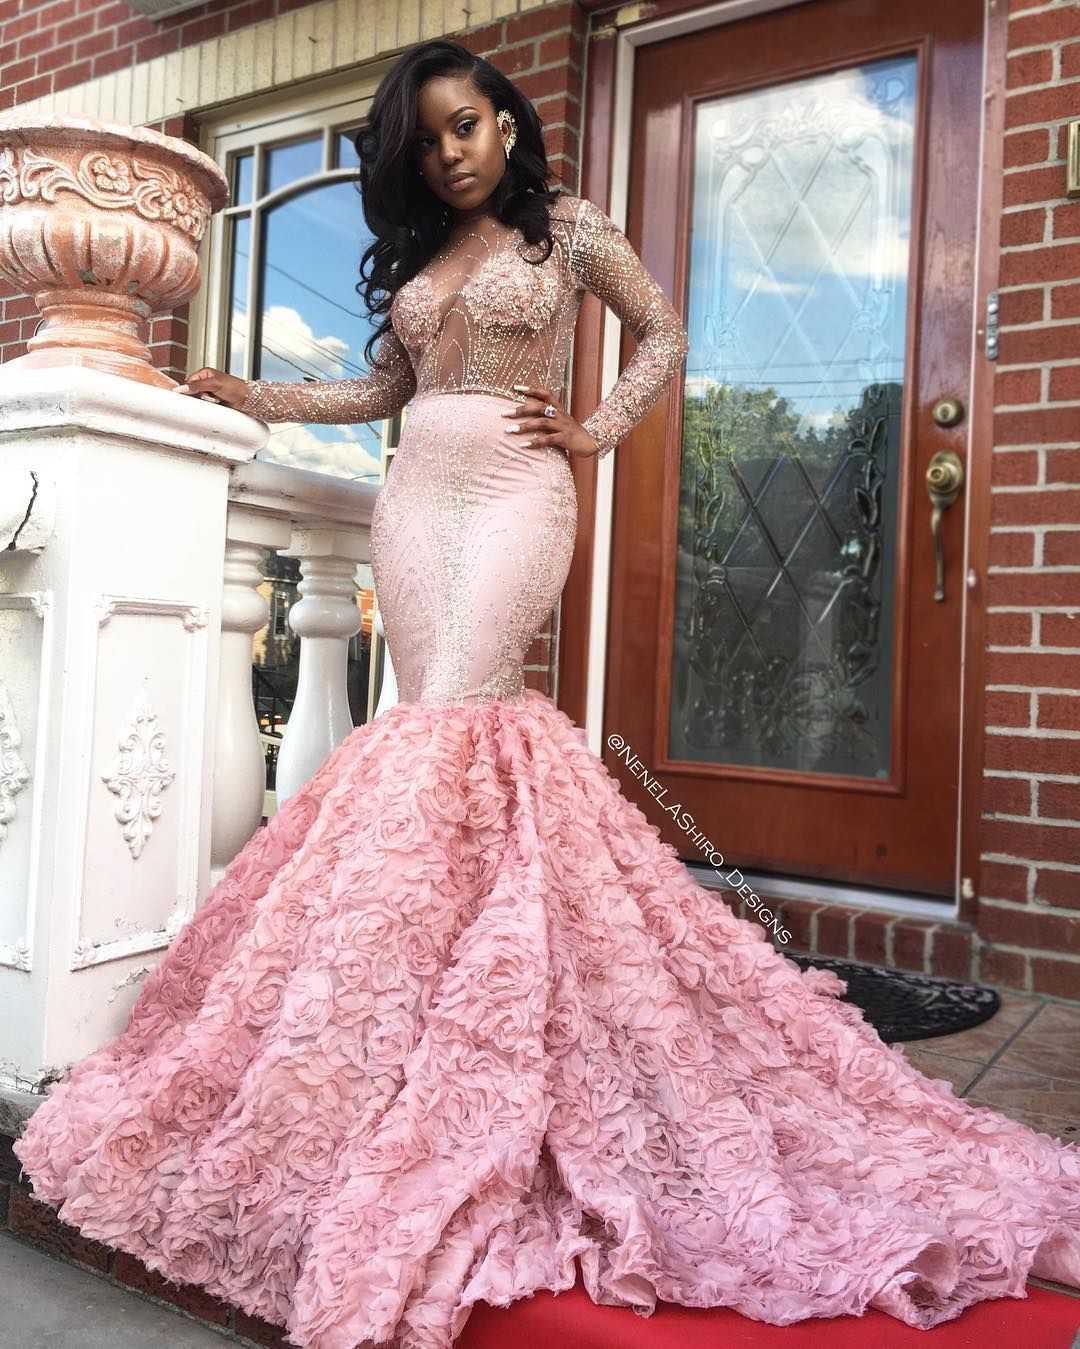 Lace wedding dress pink october 2018 Pin by Destiny Spruiel on Prom ideas in   Pinterest  Prom